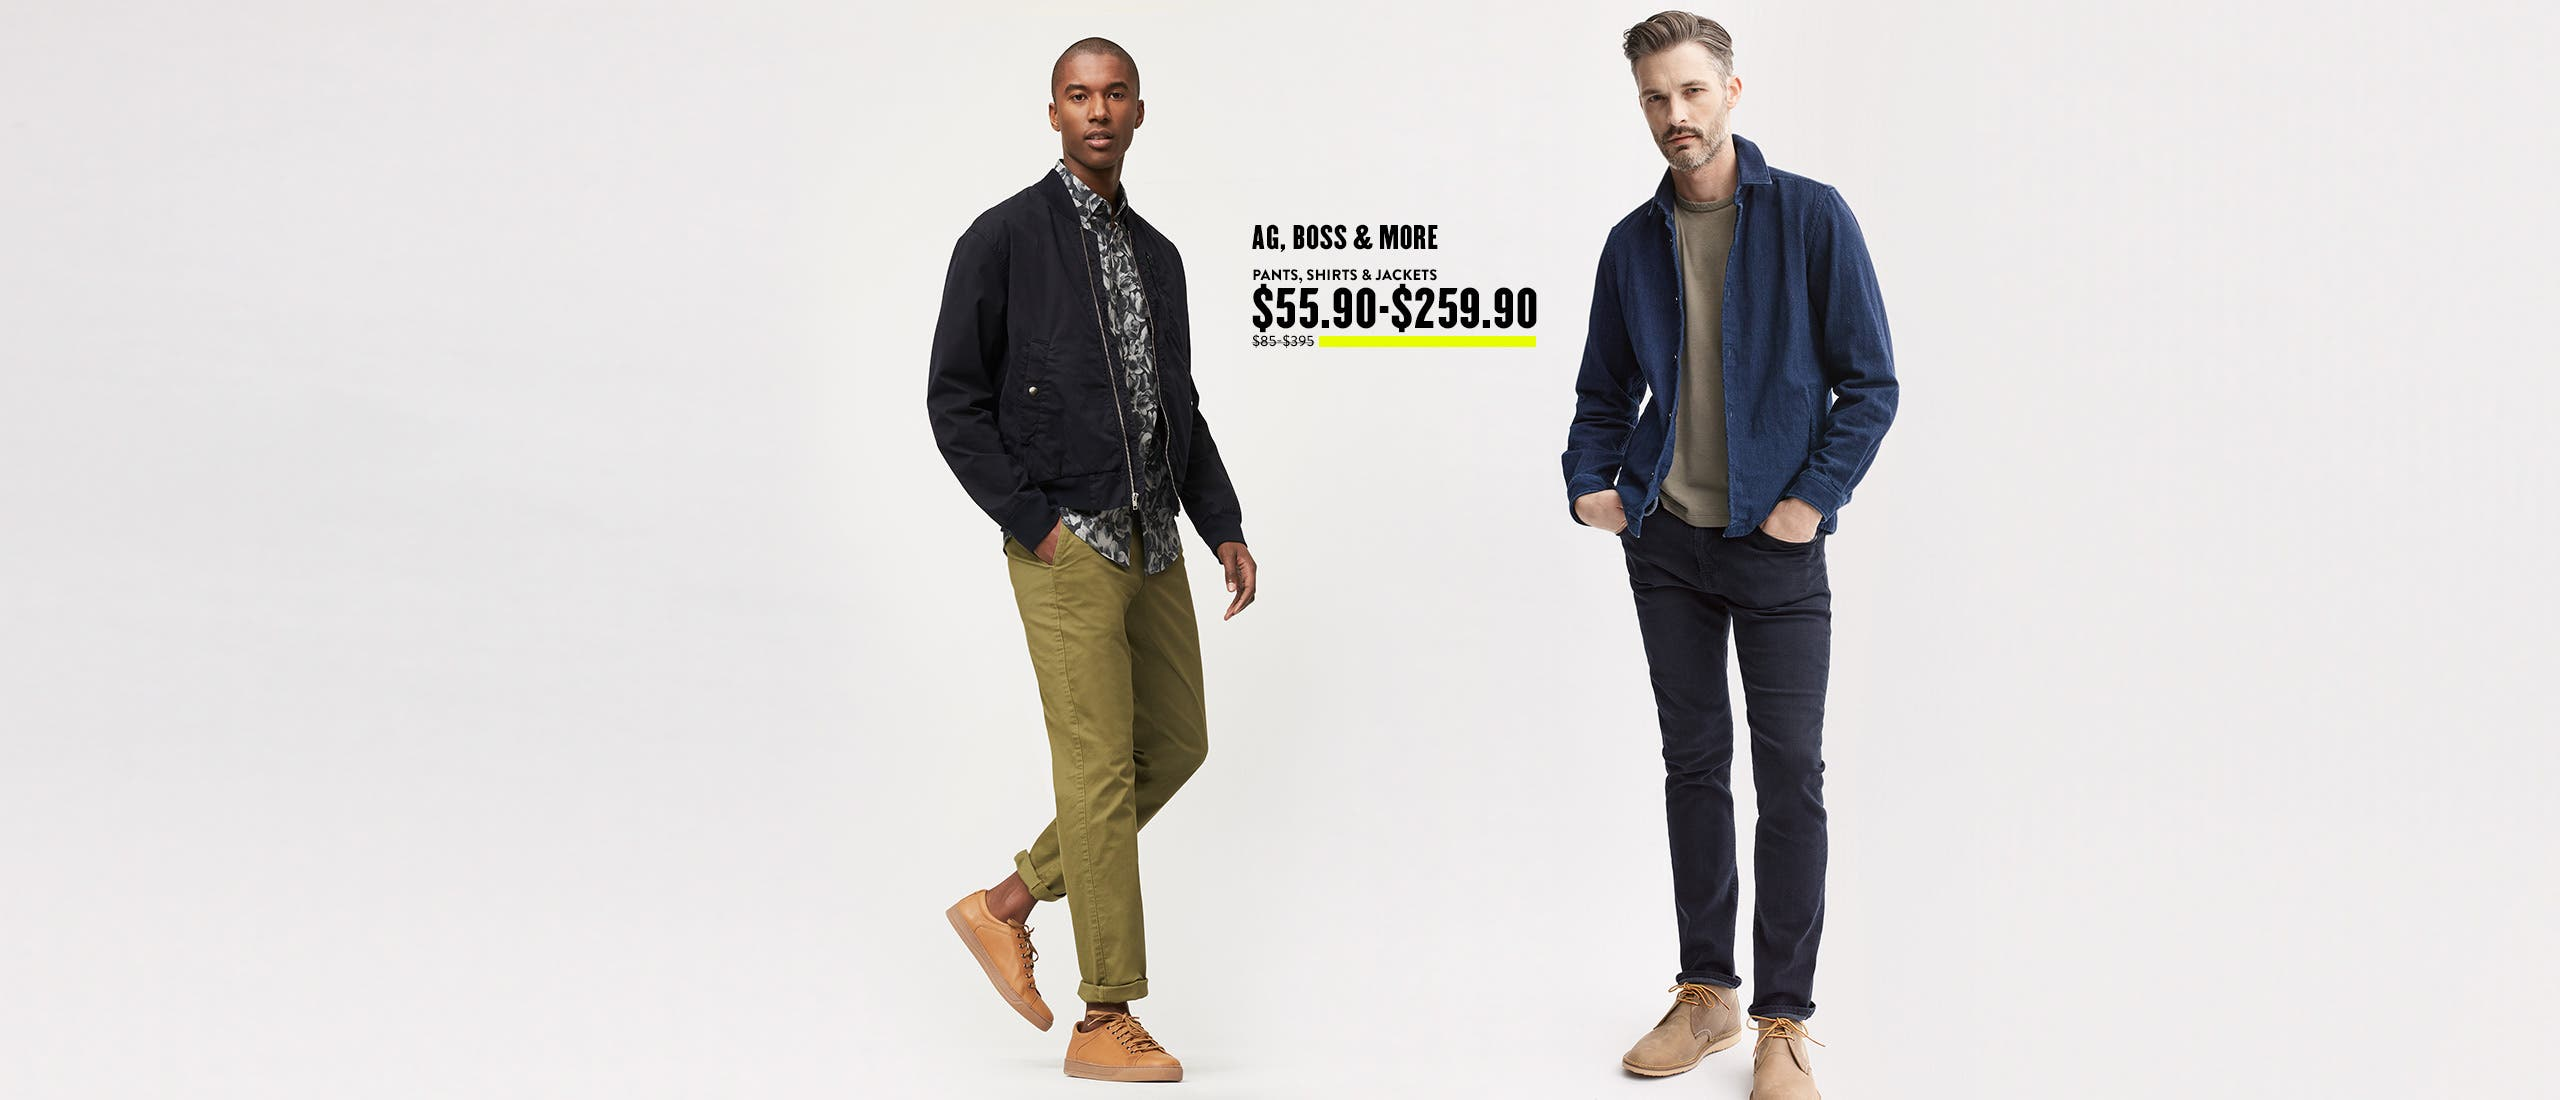 Pants, Shirts & Jacket $55.90-$259.90.